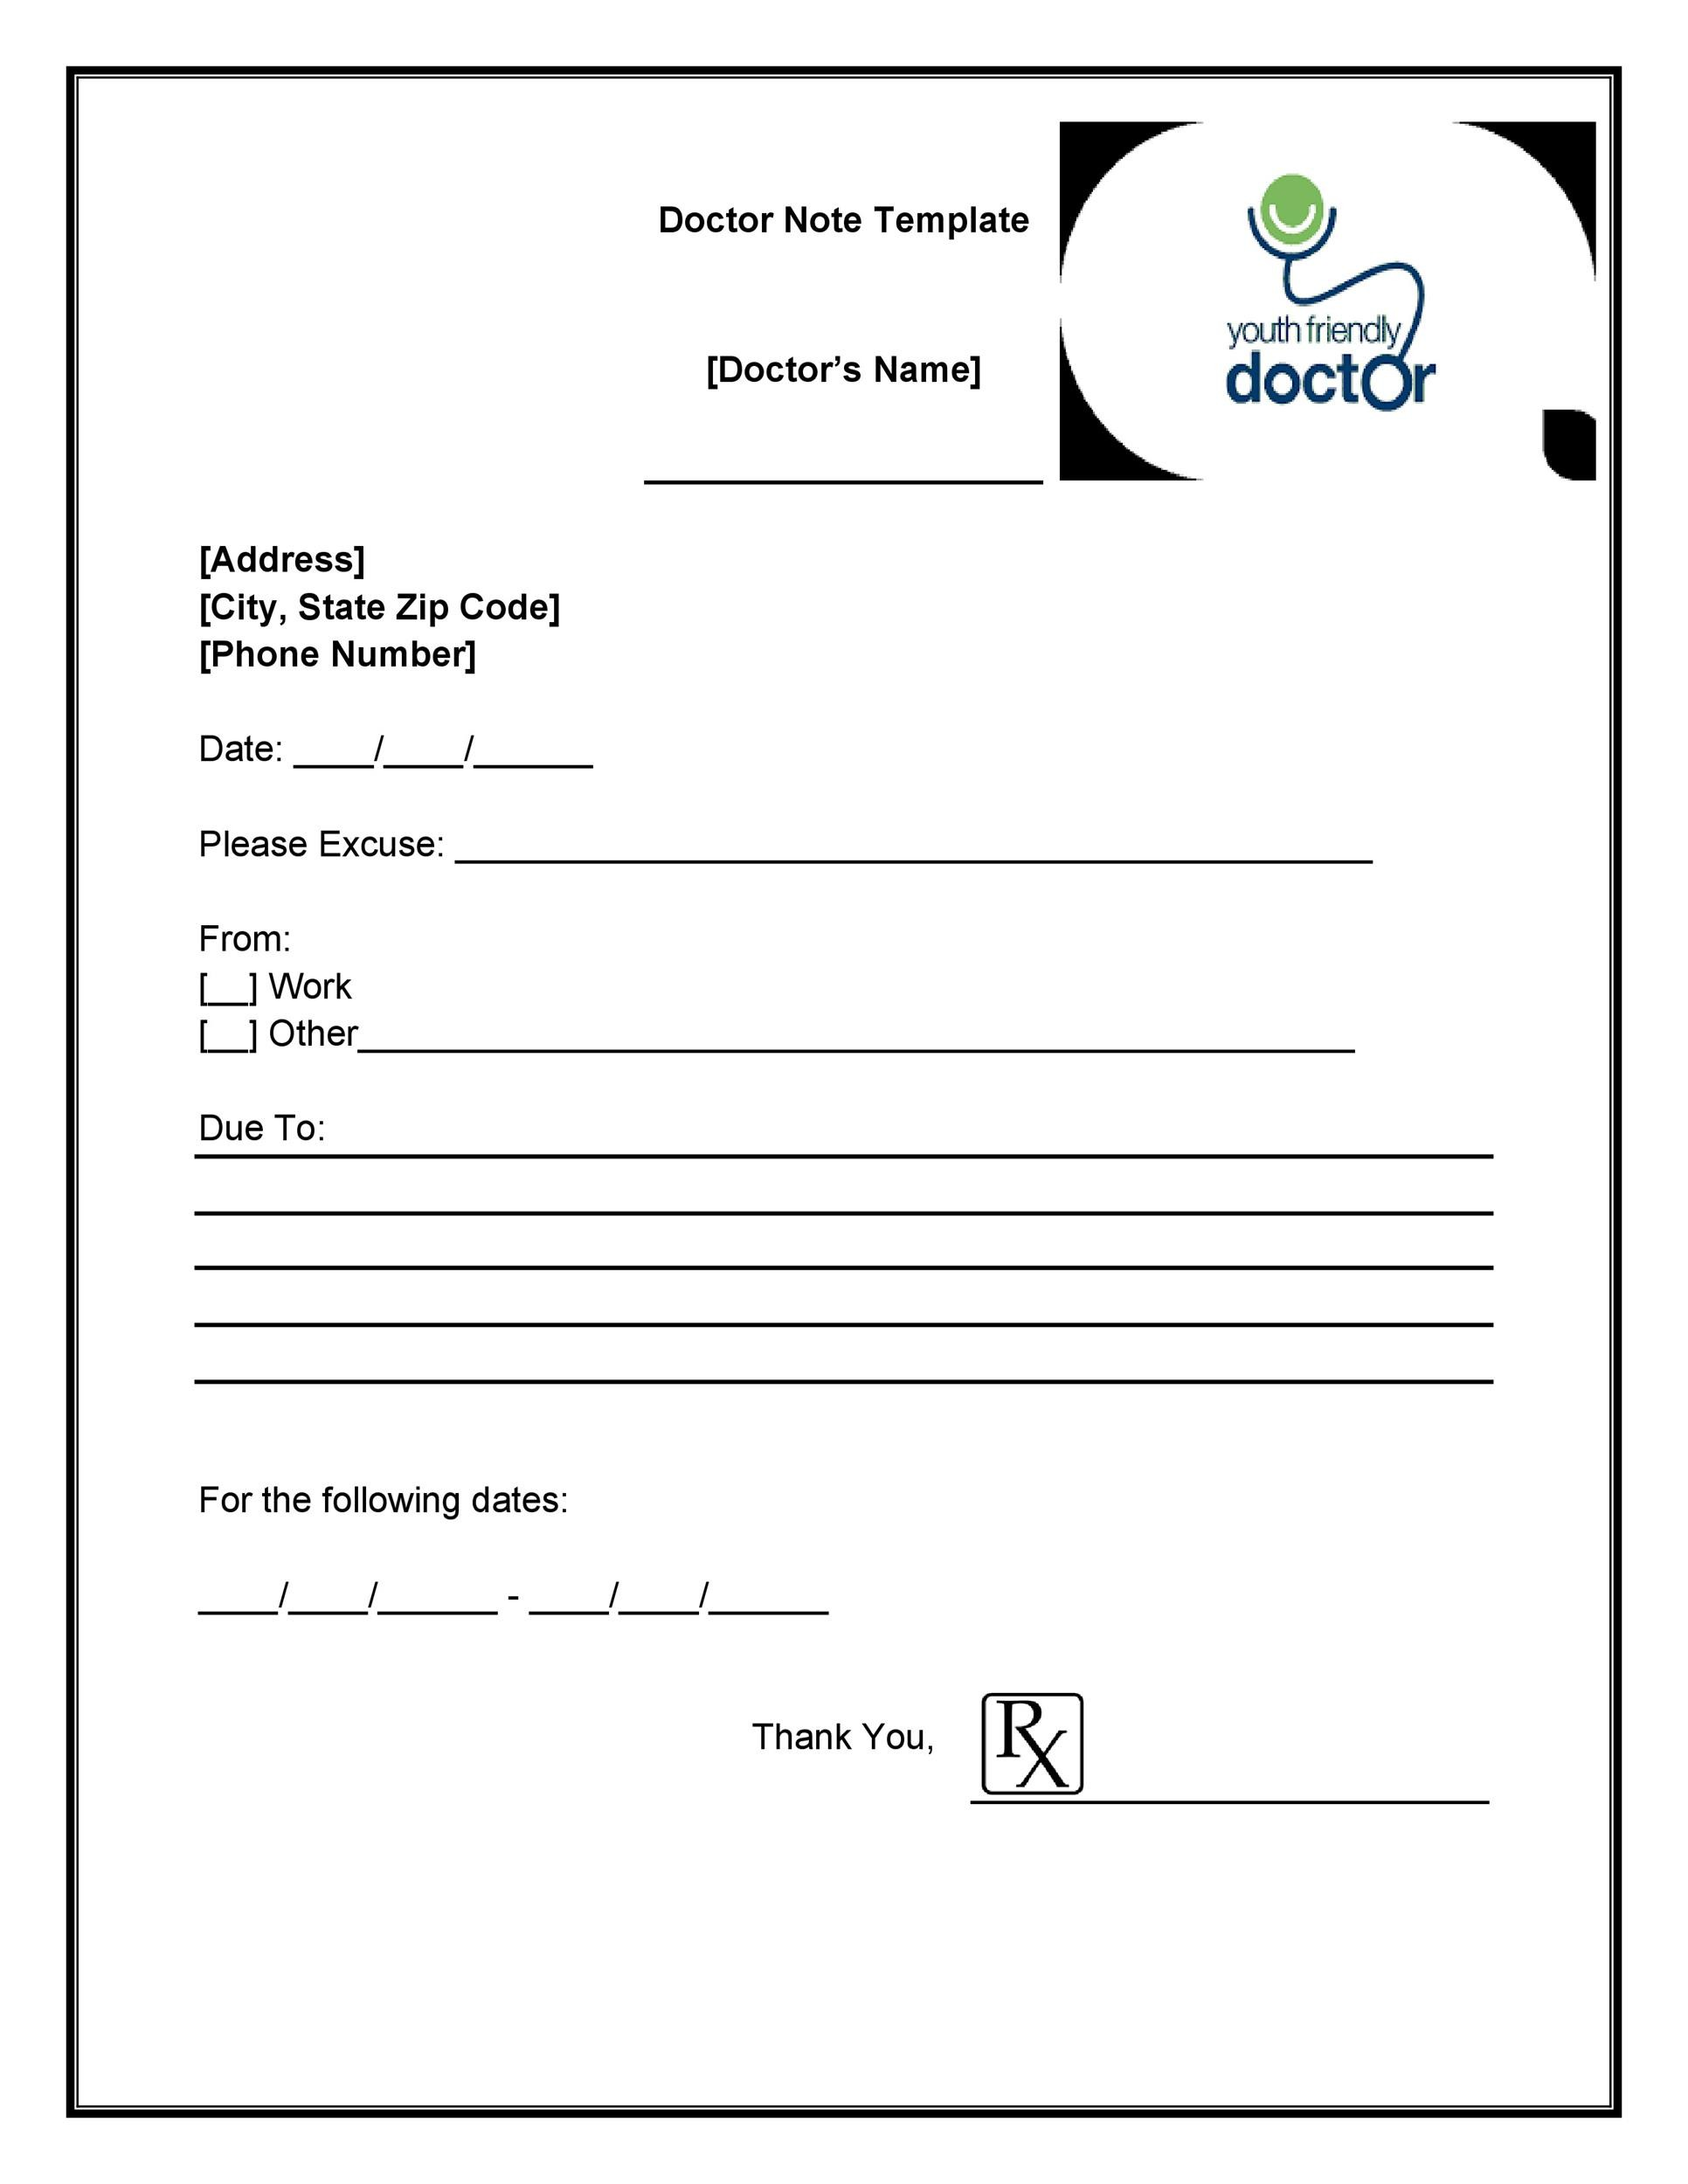 dr note template